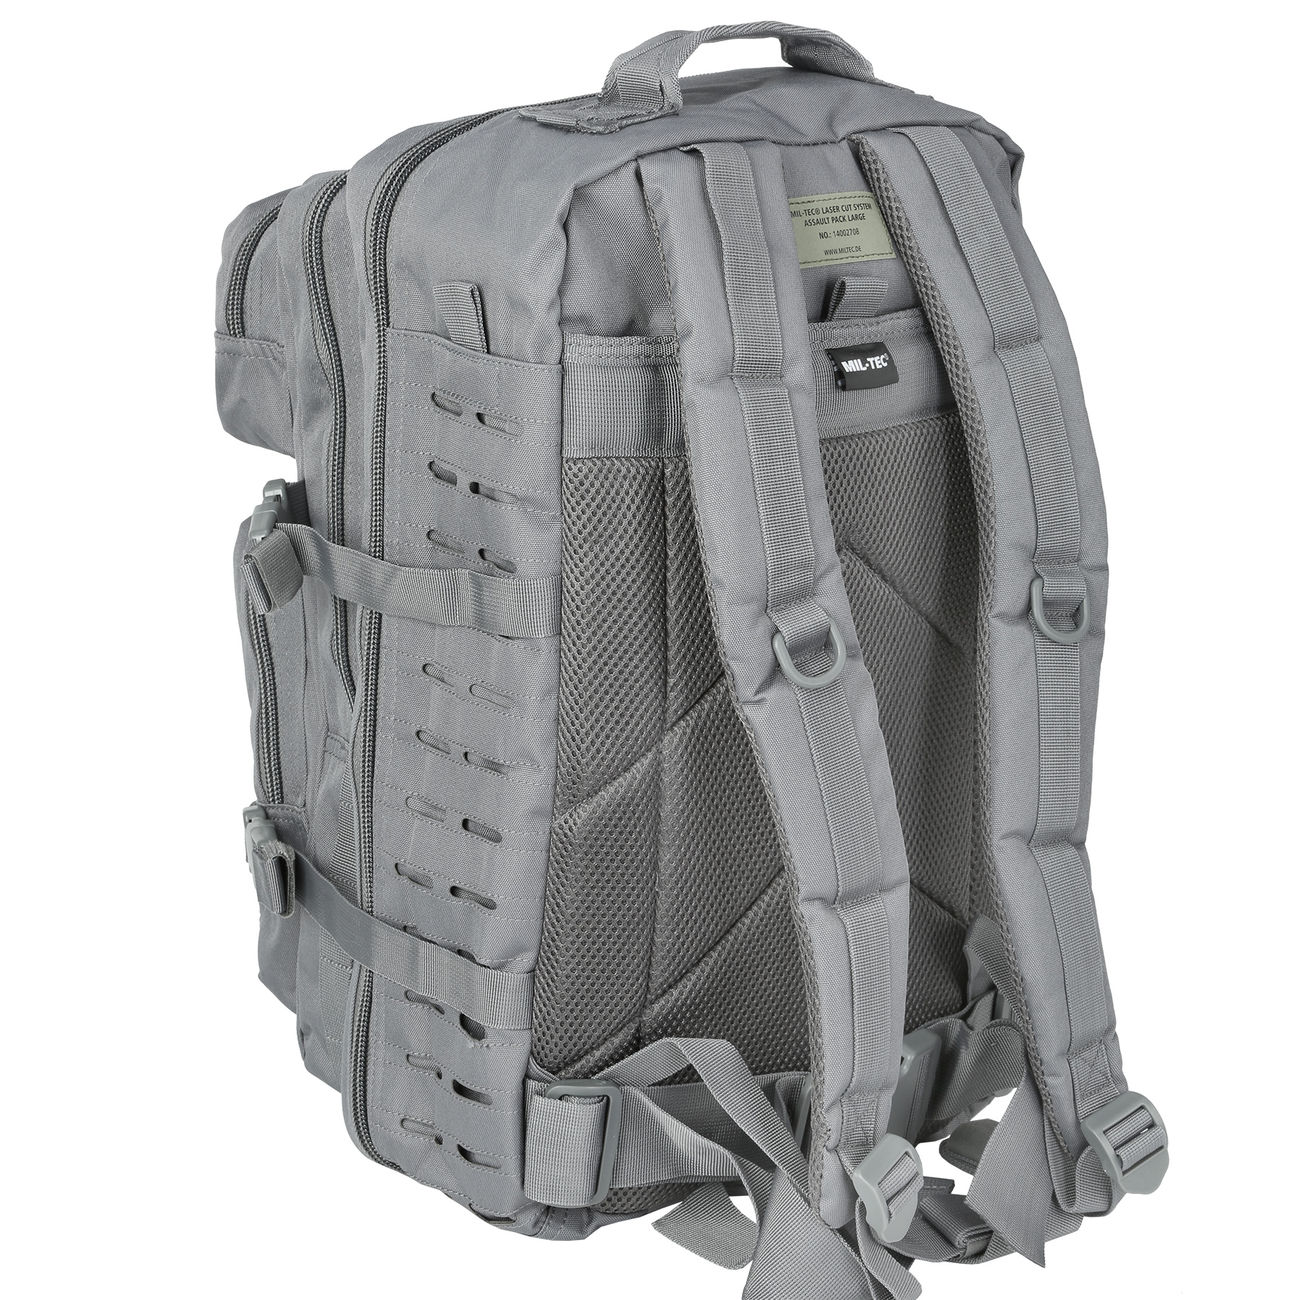 Mil-Tec Rucksack US Assault Pack Laser Cut large 36L Urban grey 3